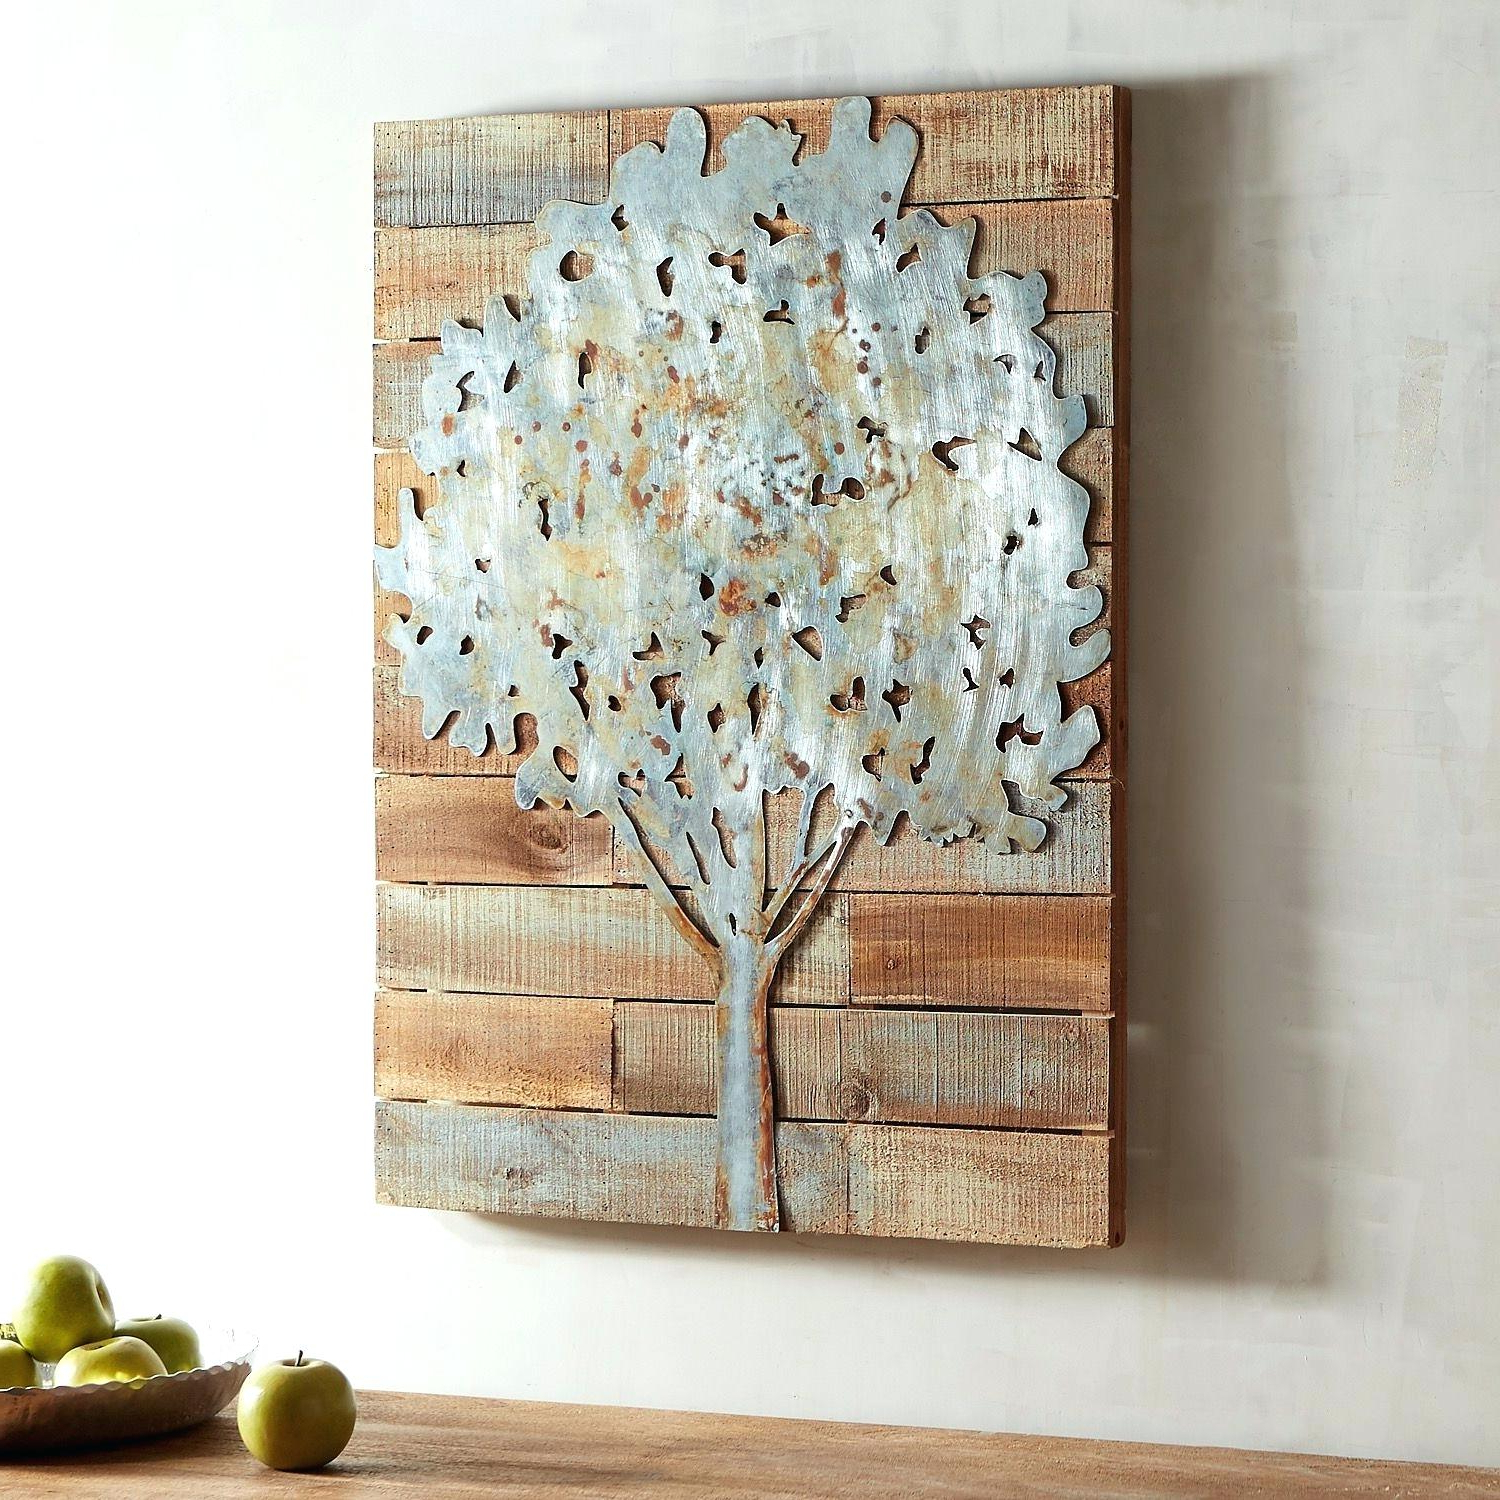 Wall Decor Tree Home Metal Of Life – Tannerphan Within Preferred Windswept Tree Wall Decor By World Menagerie (Gallery 11 of 20)